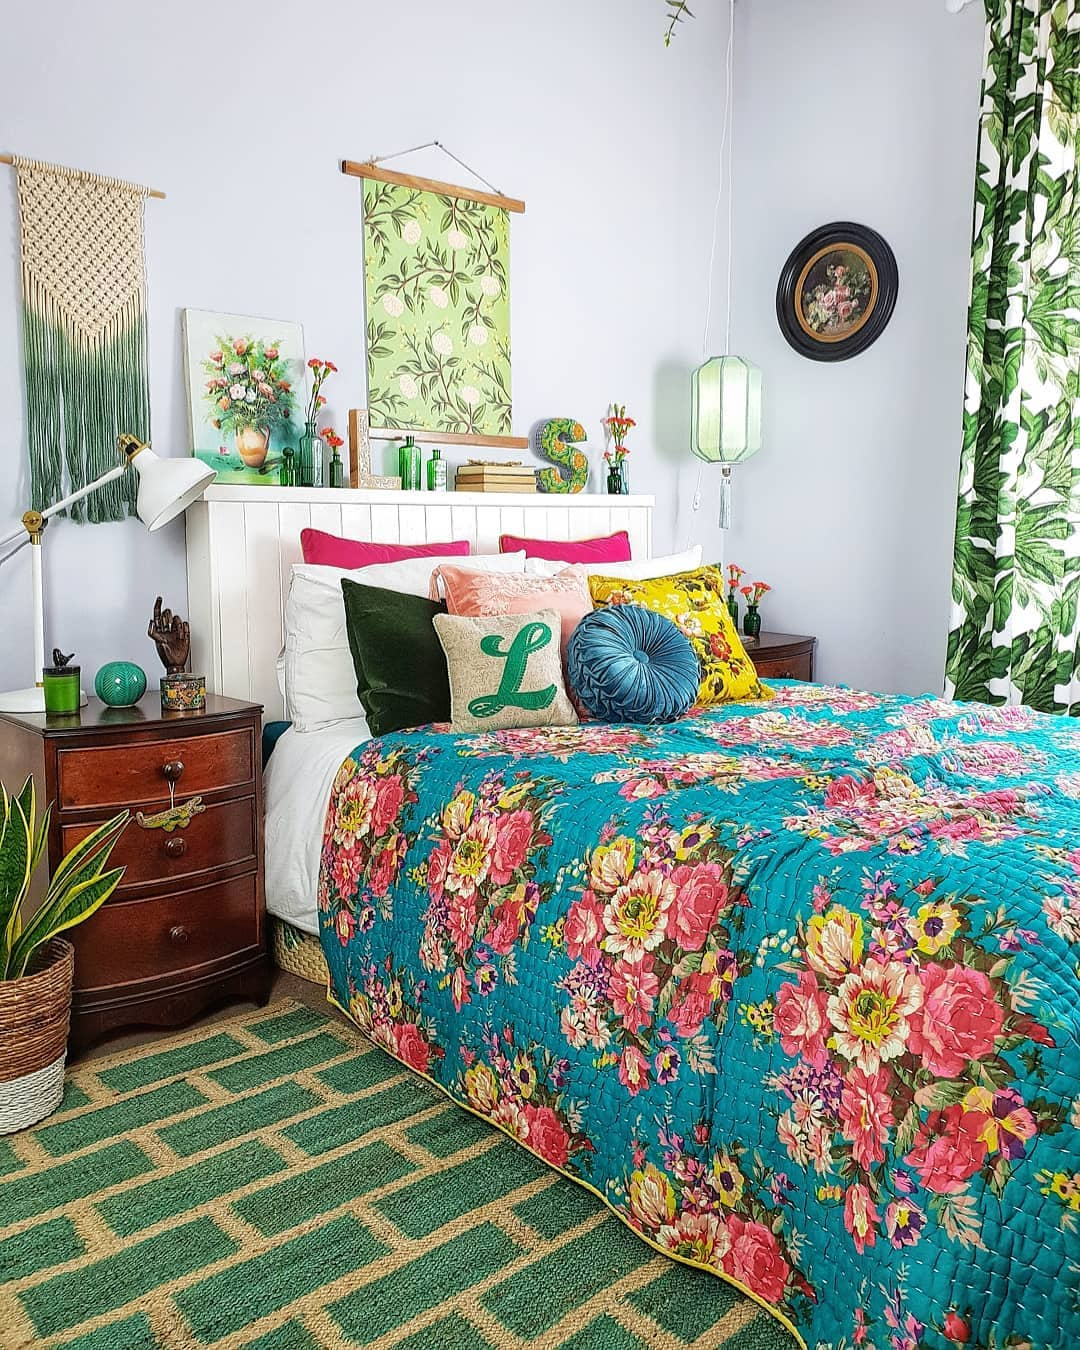 @lorriecos green bedroom